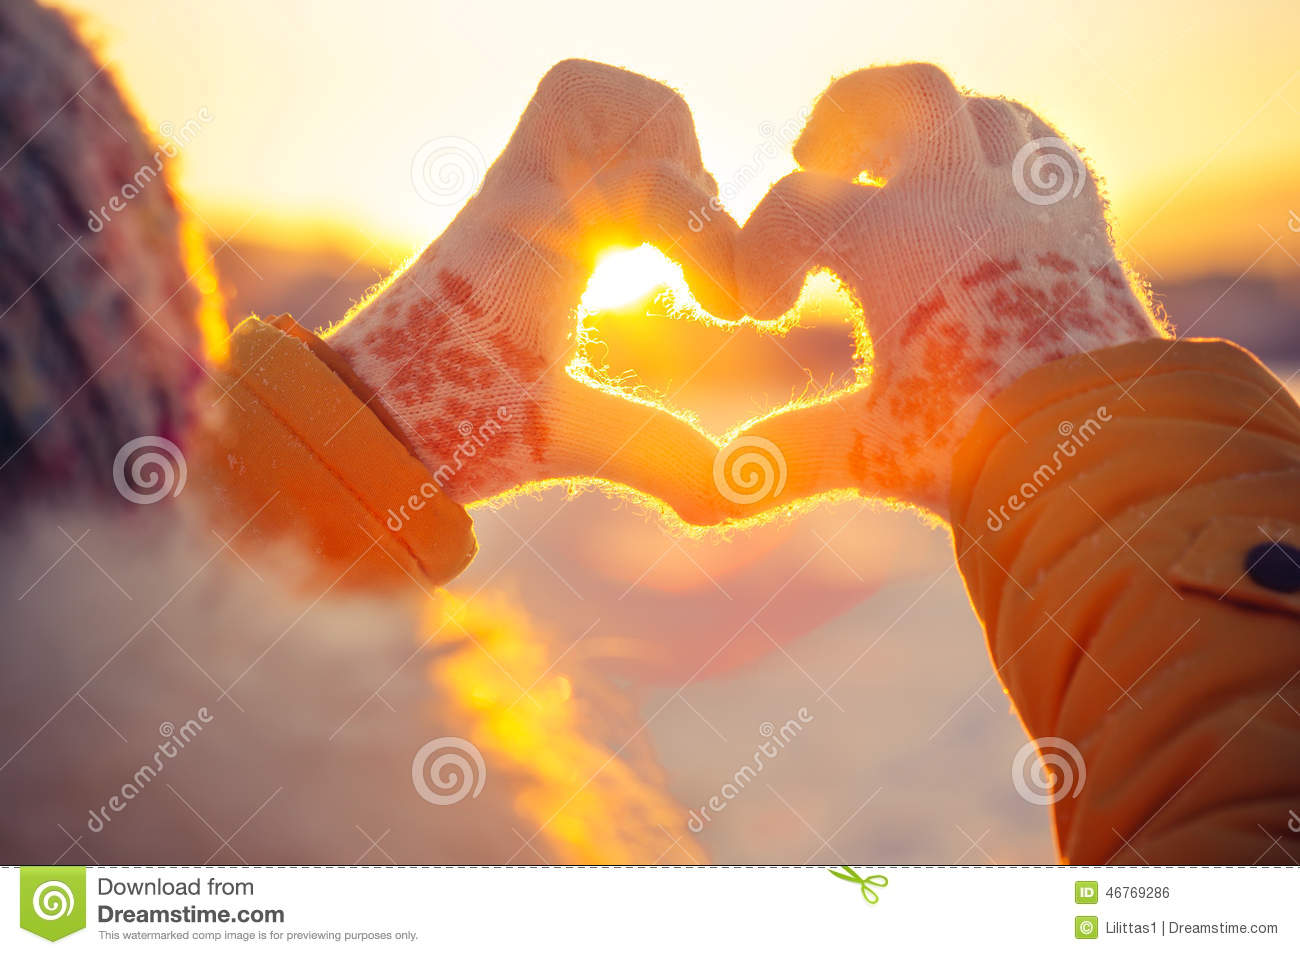 Heart stock photos download 681661 images woman hands in winter gloves heart symbol shaped lifestyle and feelings concept with sunset light buycottarizona Images